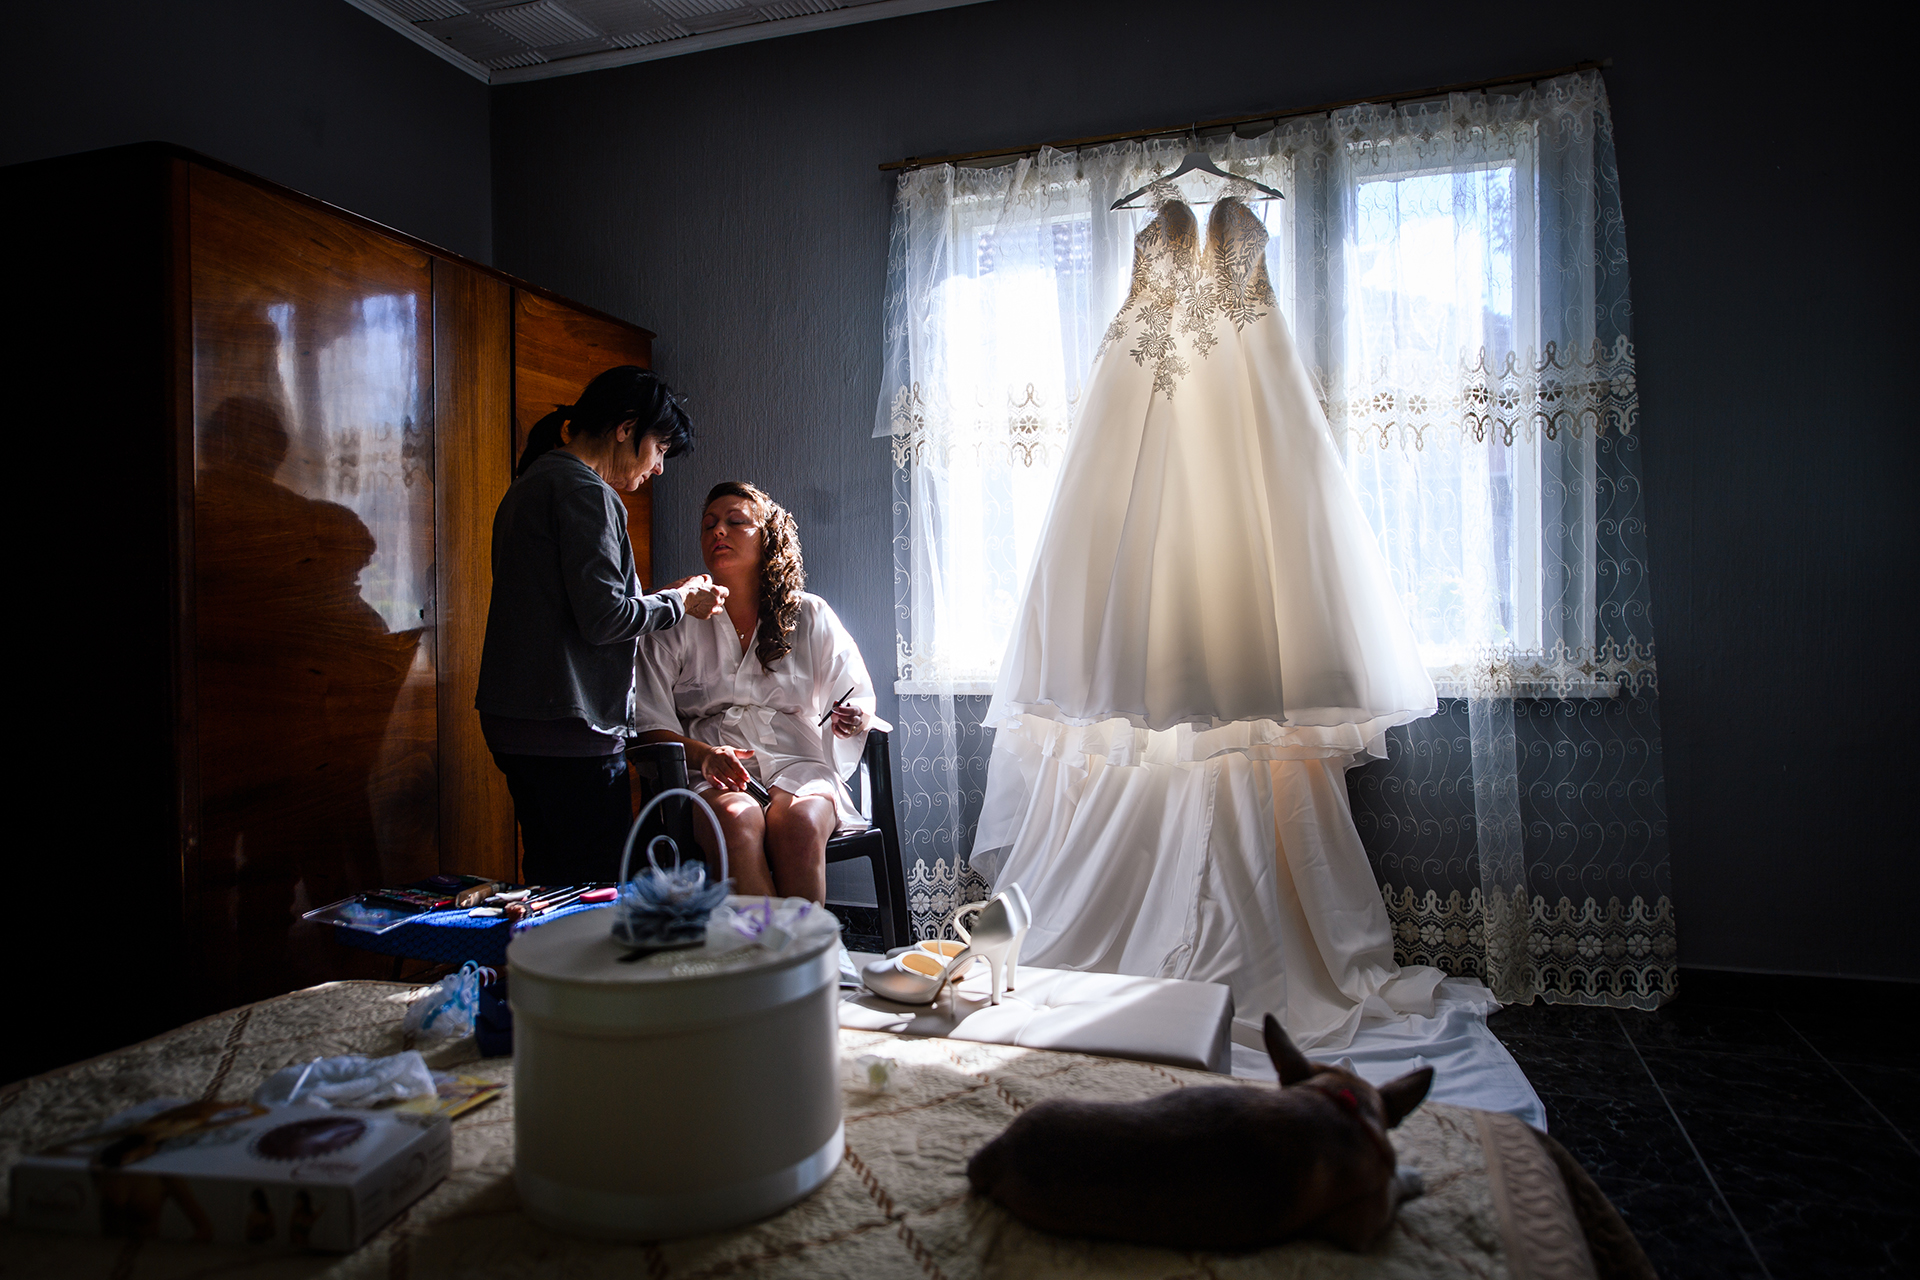 Bulgaria Elopement Photography | The bride is getting her makeup done for her big day